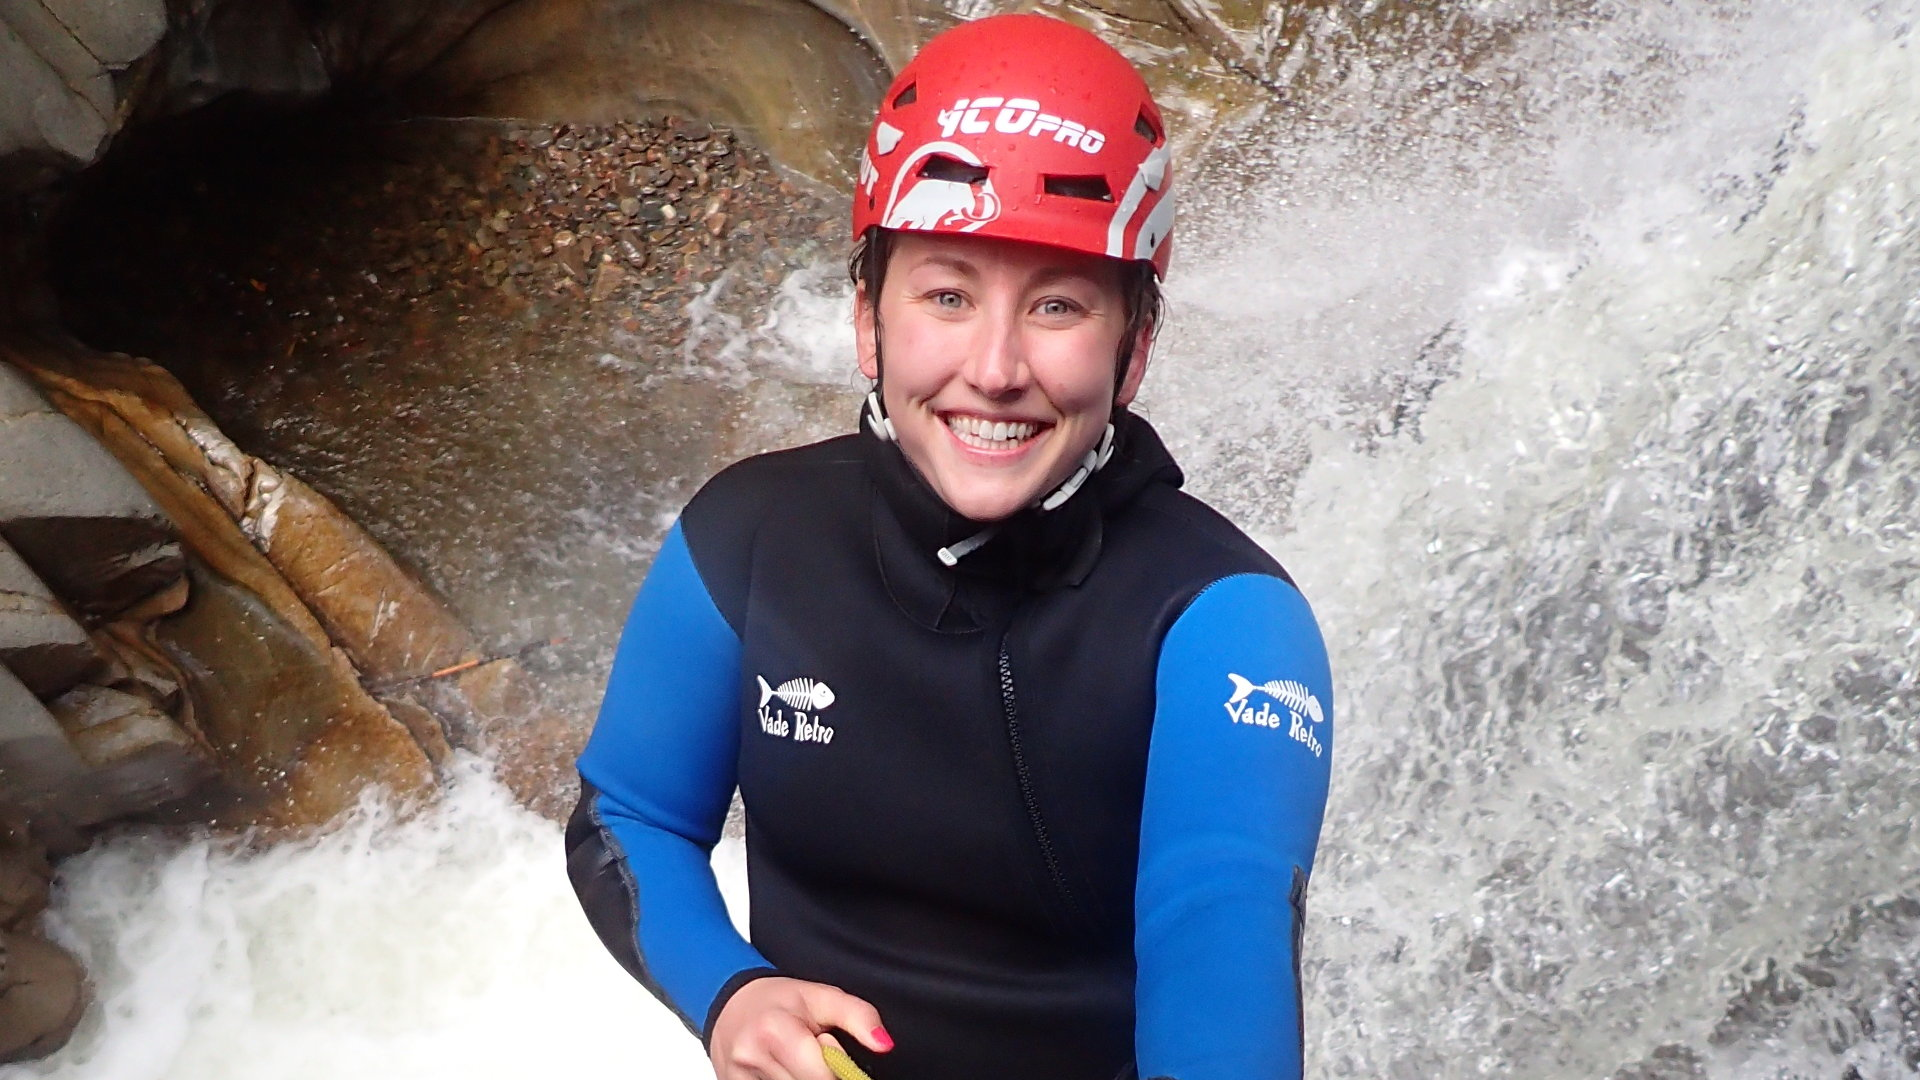 canyoneer smiling as they abseil down a waterfall